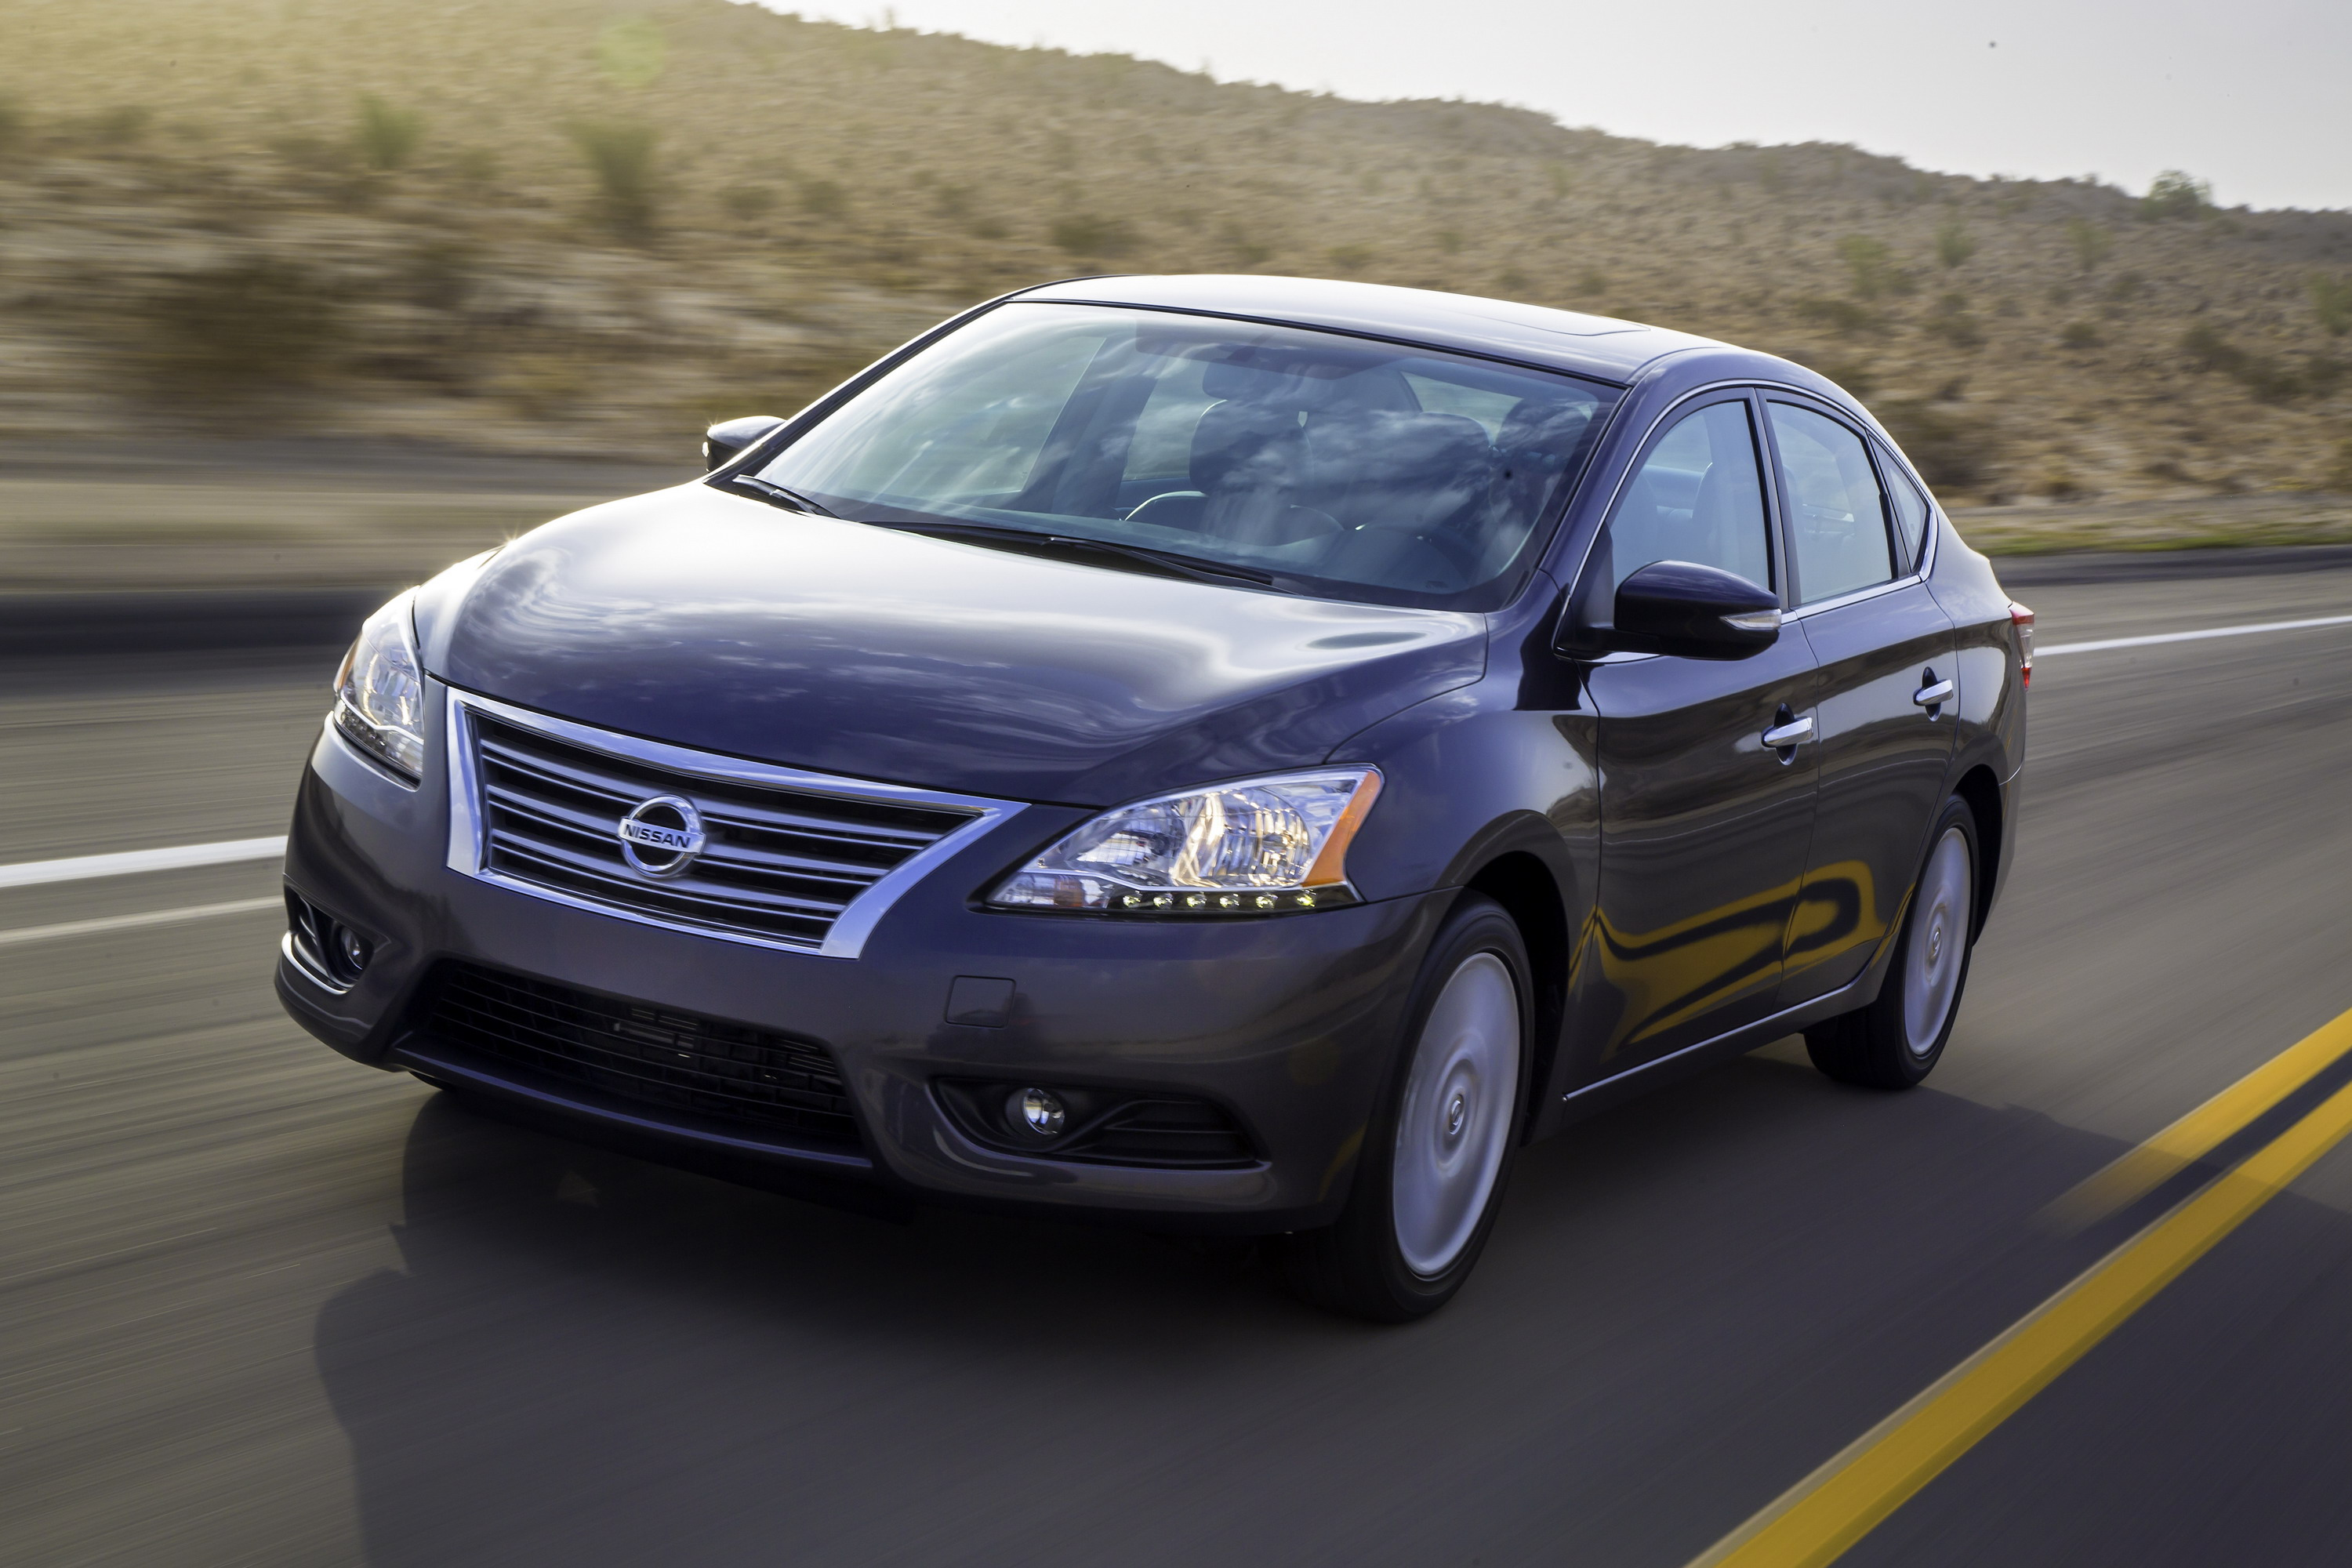 Nissan Sentra Owners Manual: Specifications